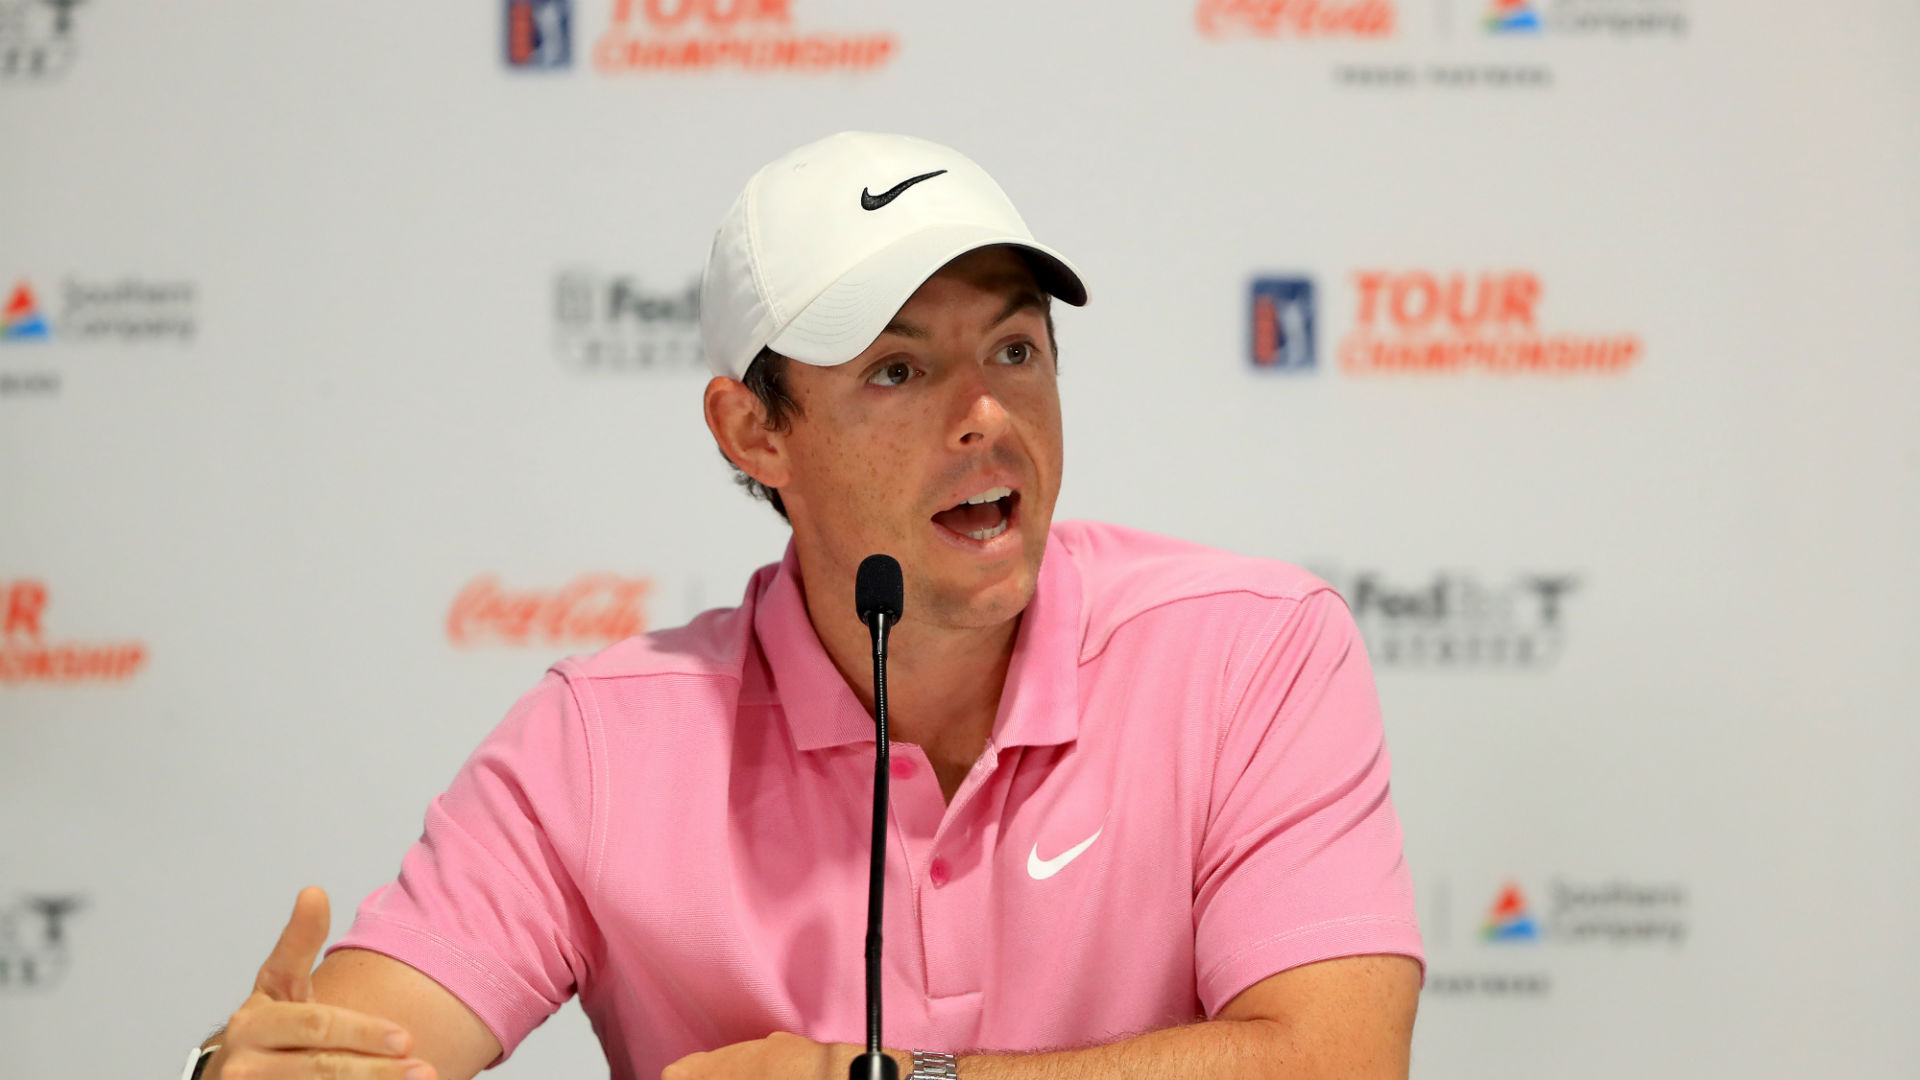 Come back to me on Monday! McIlroy unsure on revamped Tour Championship format